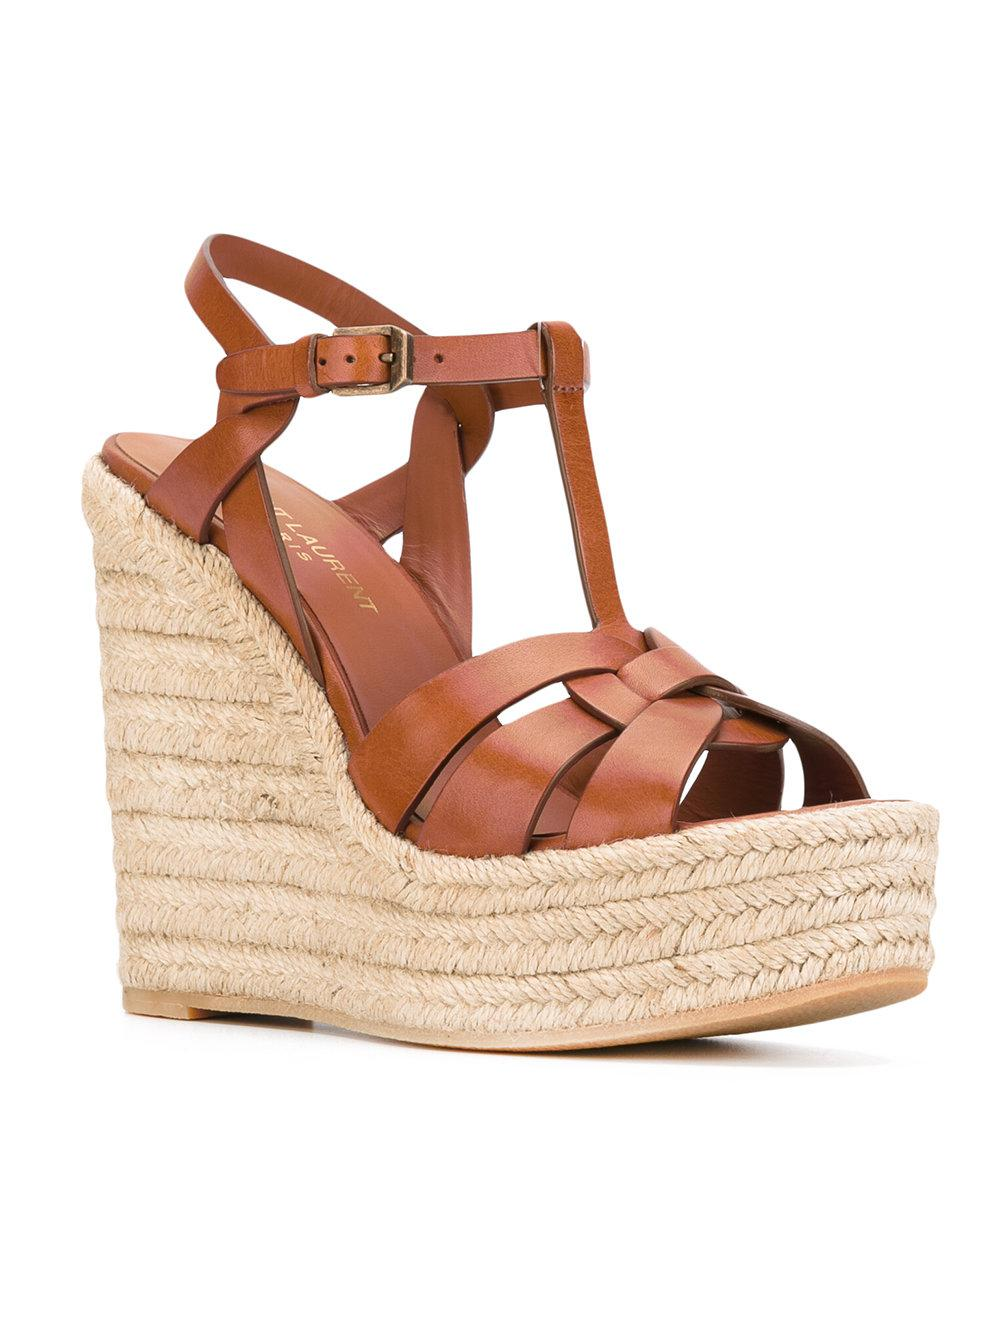 f2f91e833151 Lyst - Saint Laurent Tribute Espadrille Wedged Sandals in Brown - Save 40%